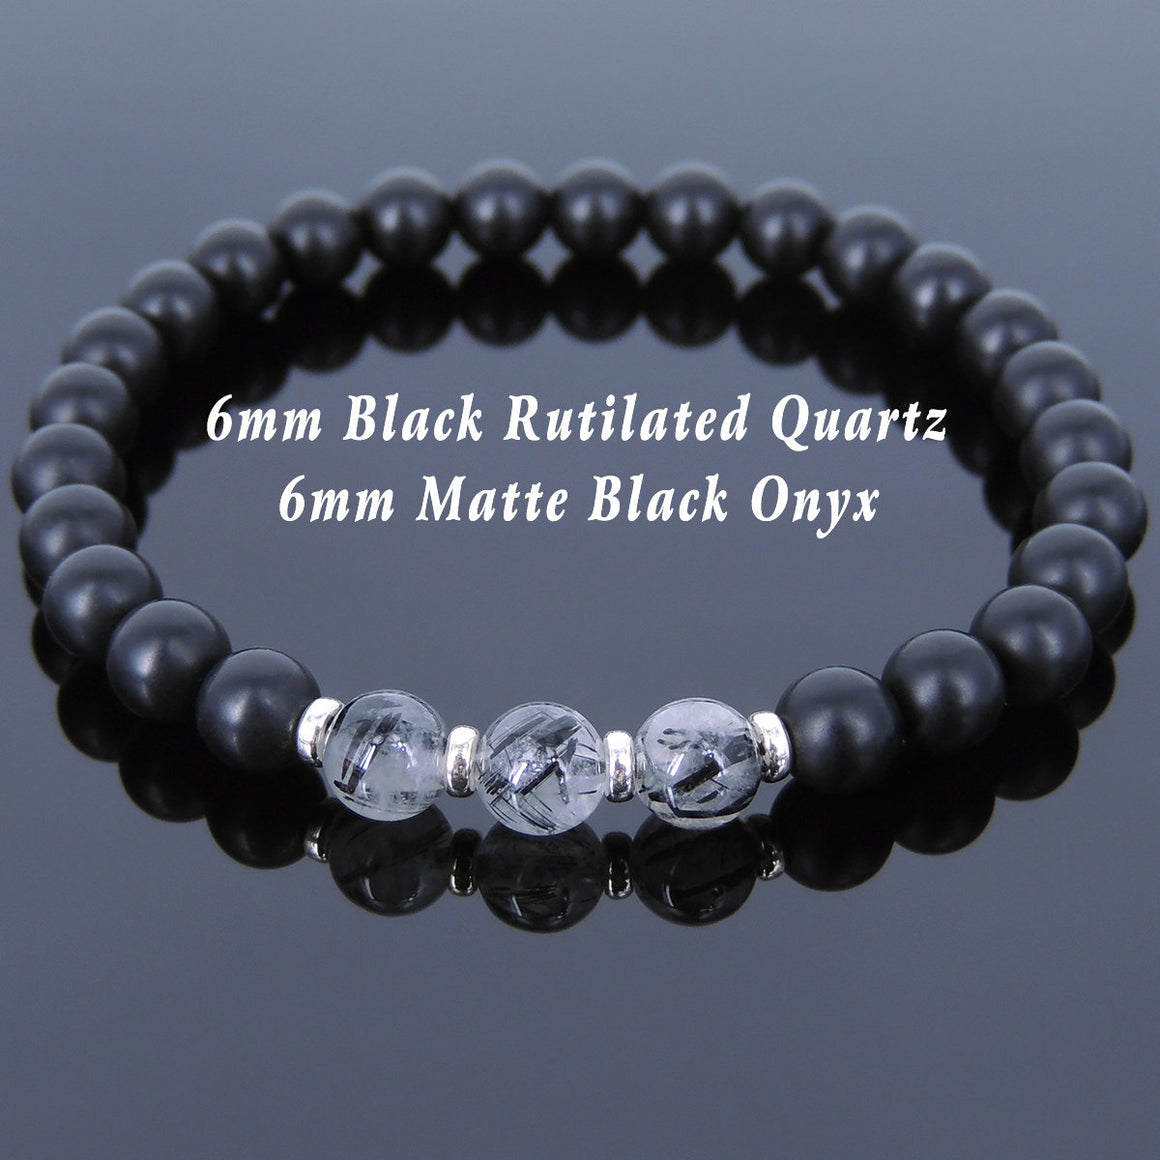 6mm Matte Black Onyx & Black Rutilated Quartz Healing Gemstone Bracelet with S925 Sterling Silver Spacers - Handmade by Gem & Silver BR678